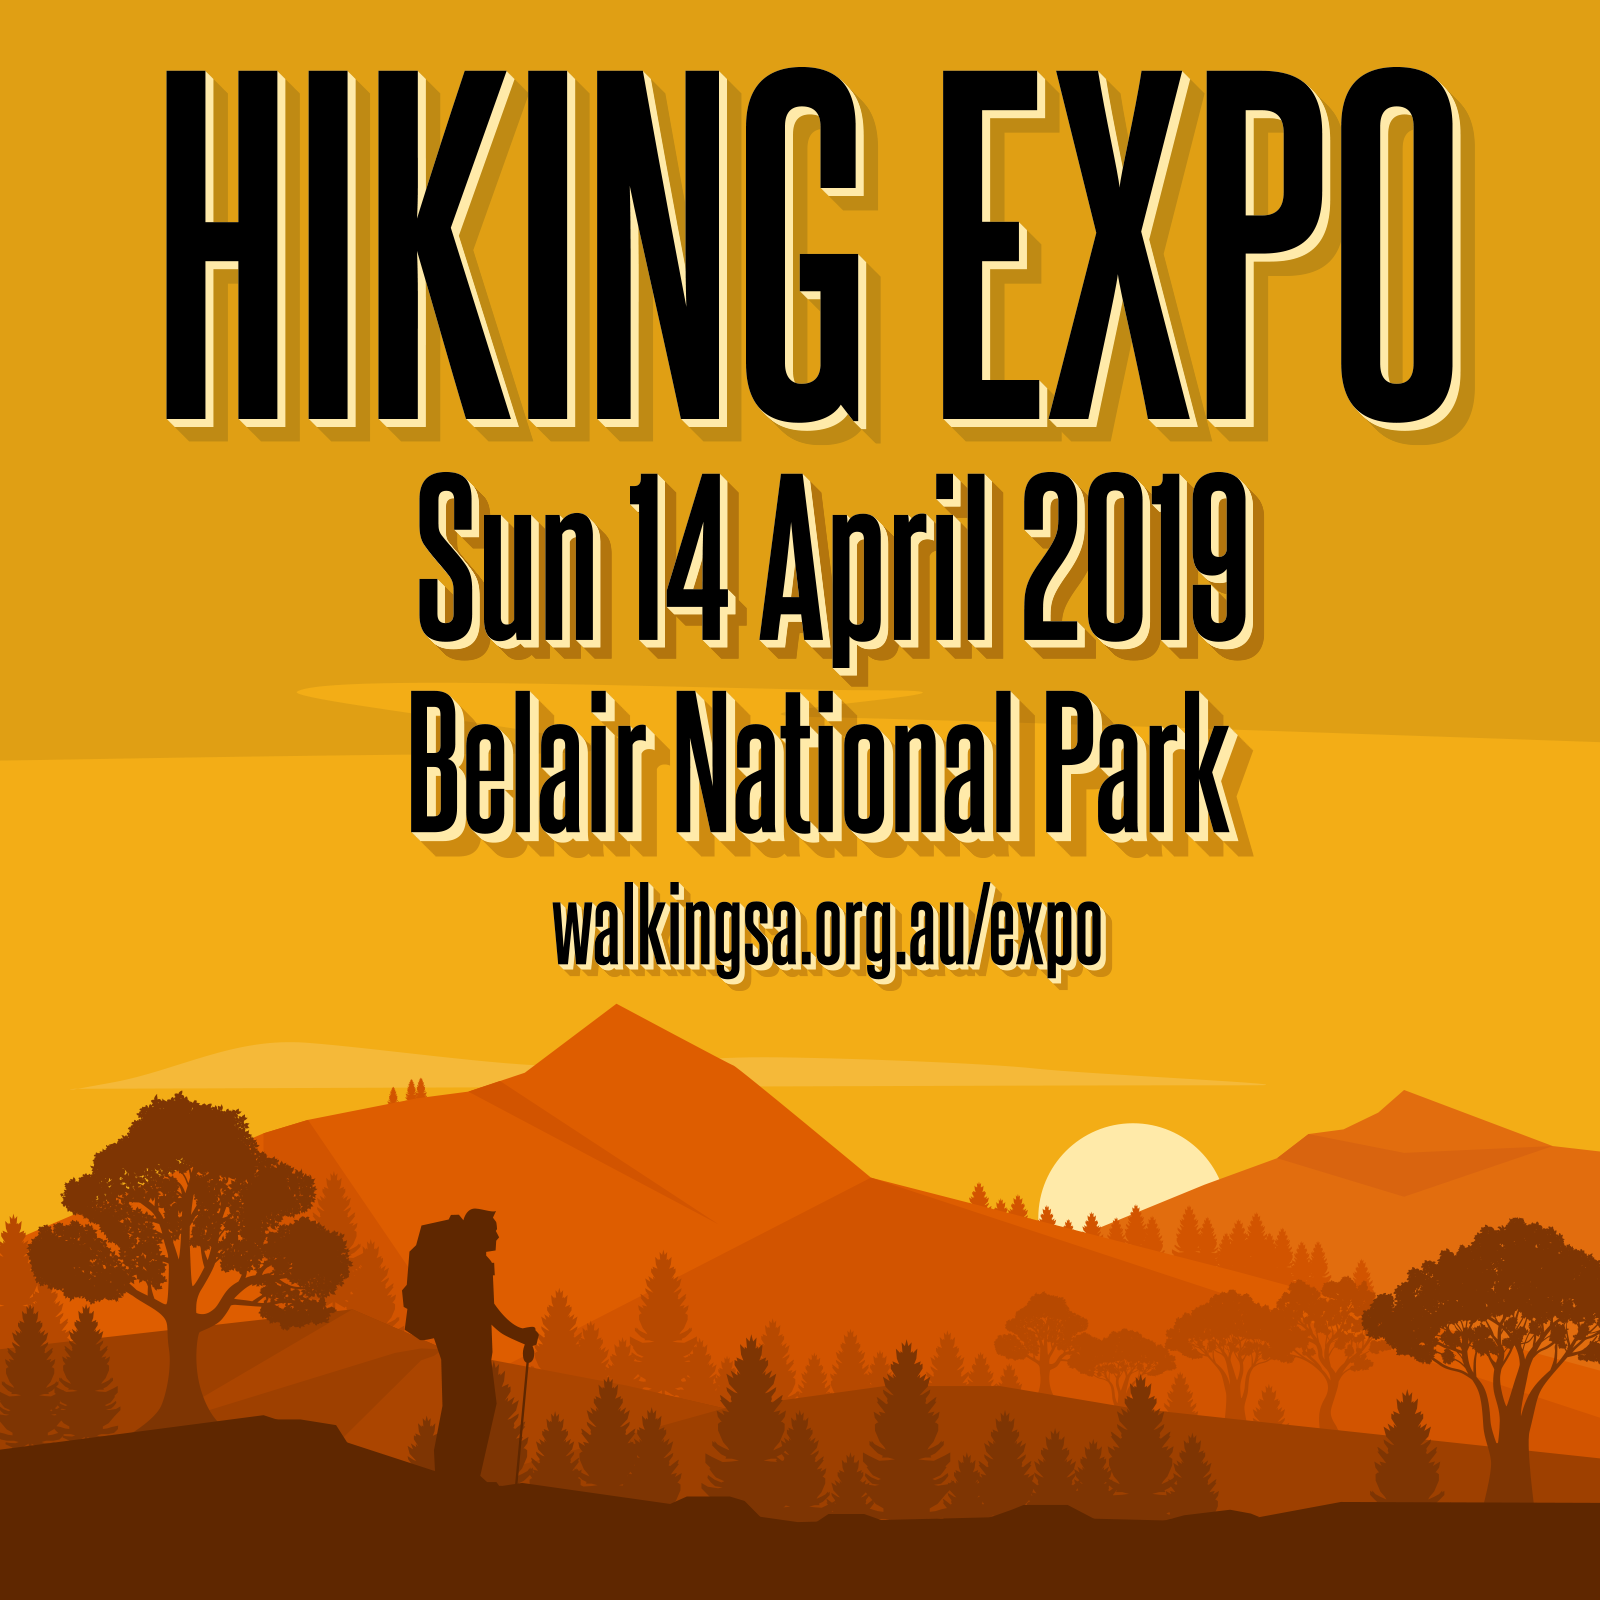 Hiking Expo, Sunday 14th April 2019